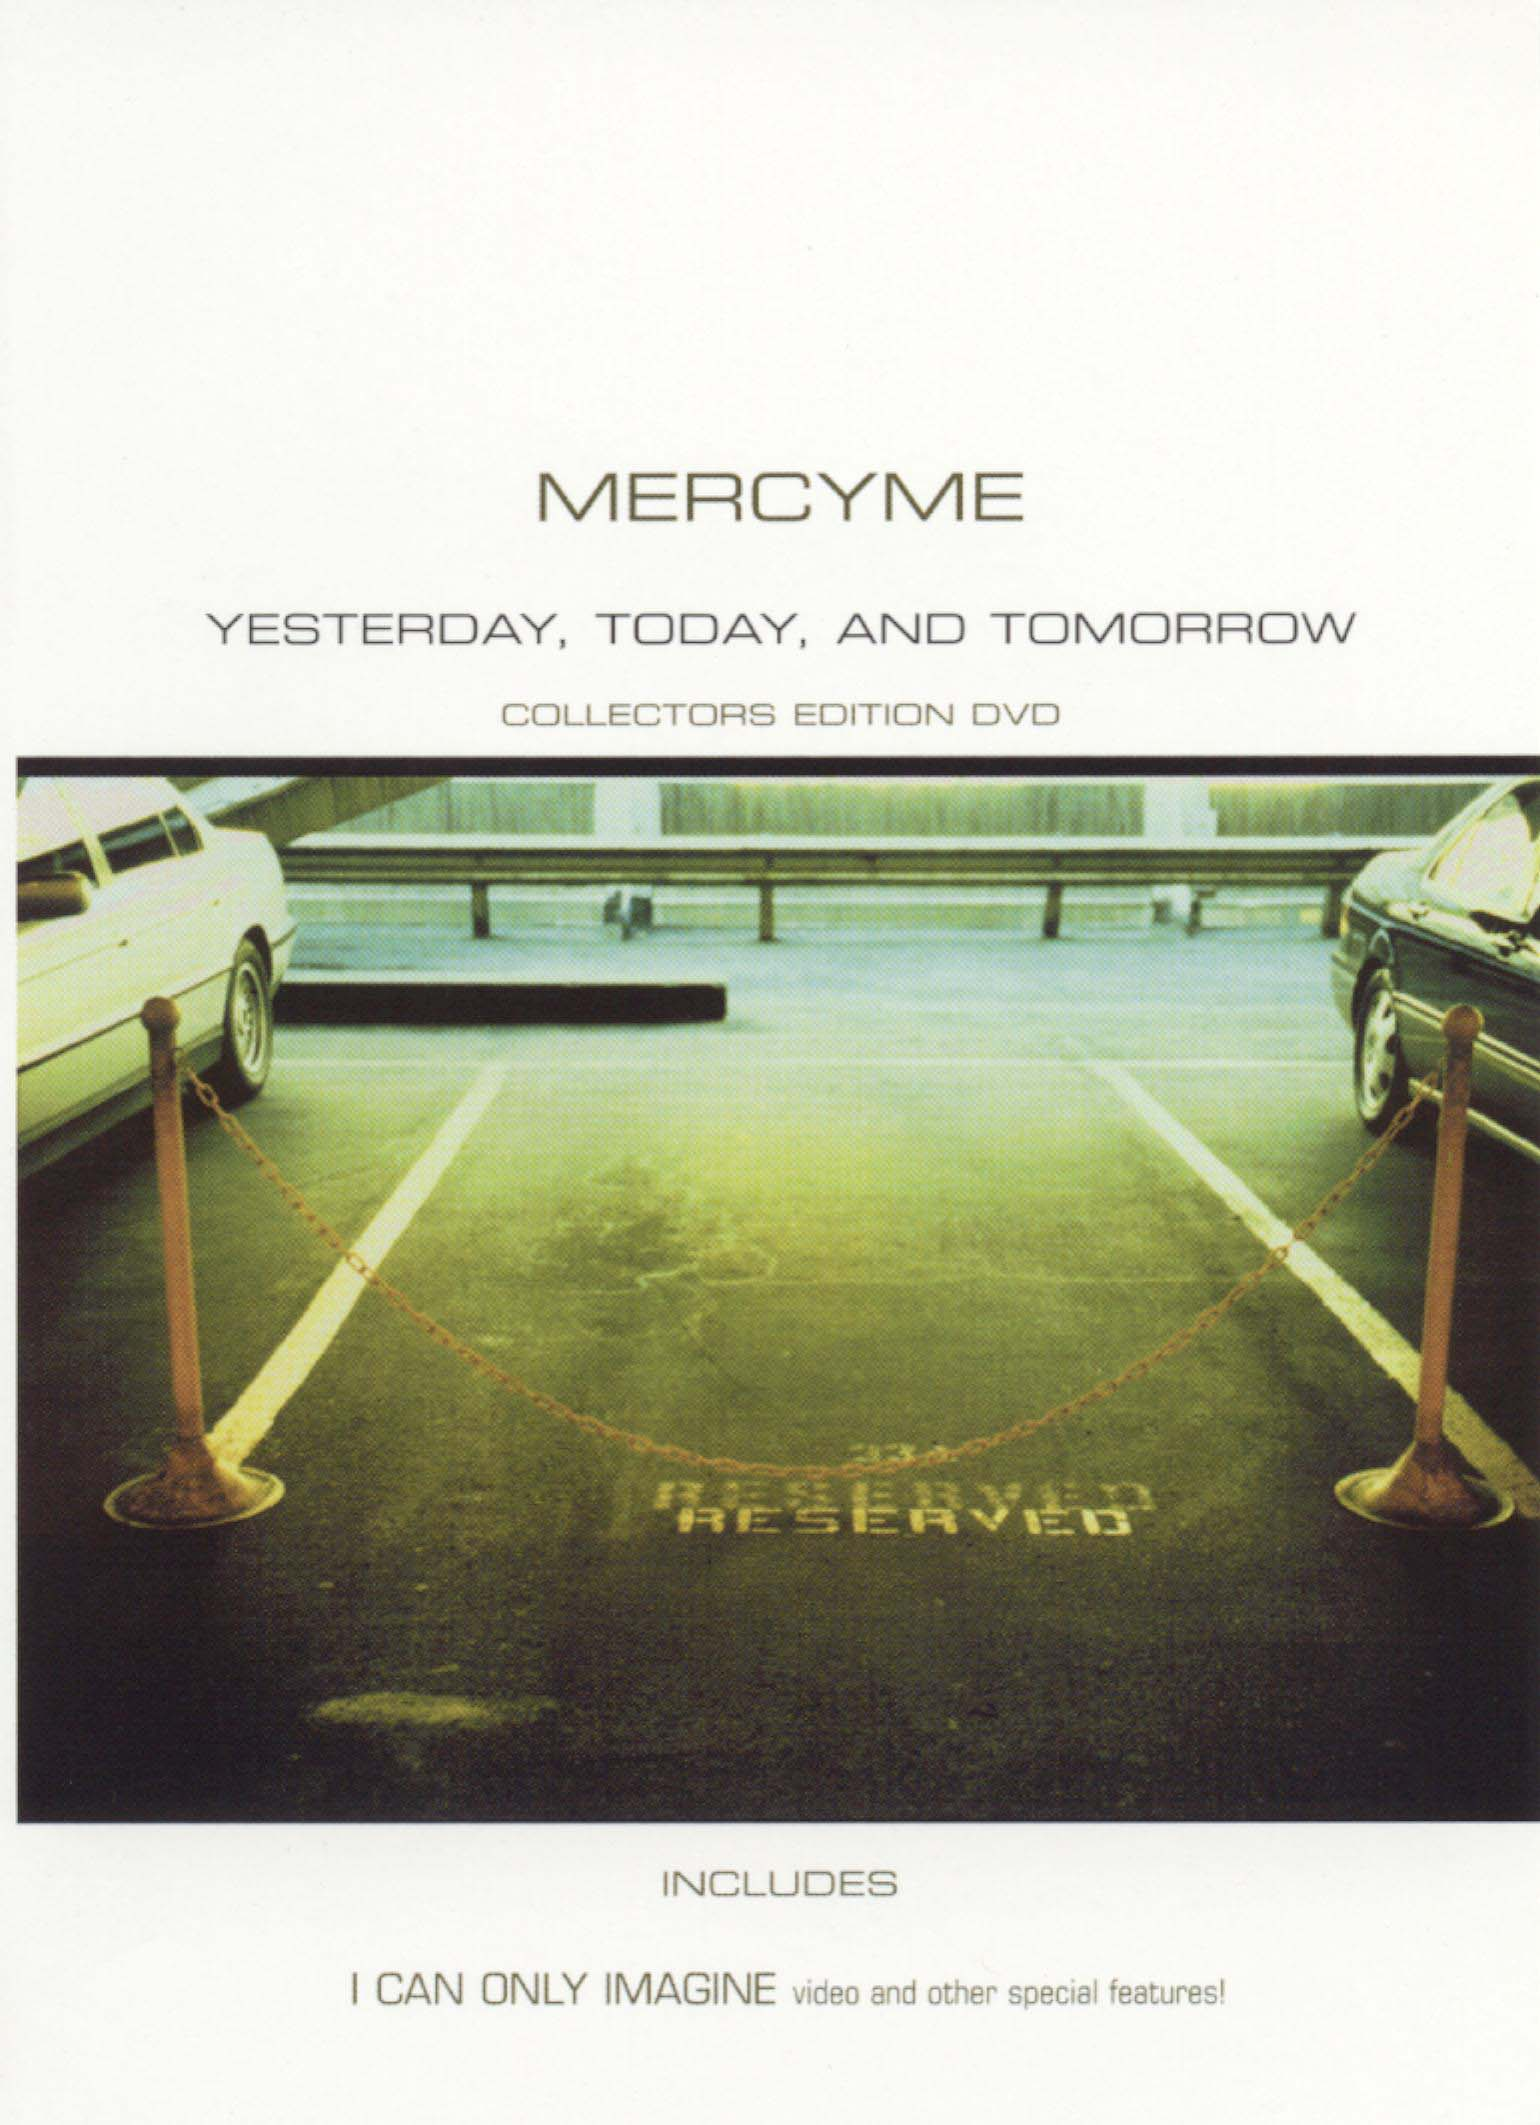 Mercy Me: Yesterday, Today, and Tomorrow